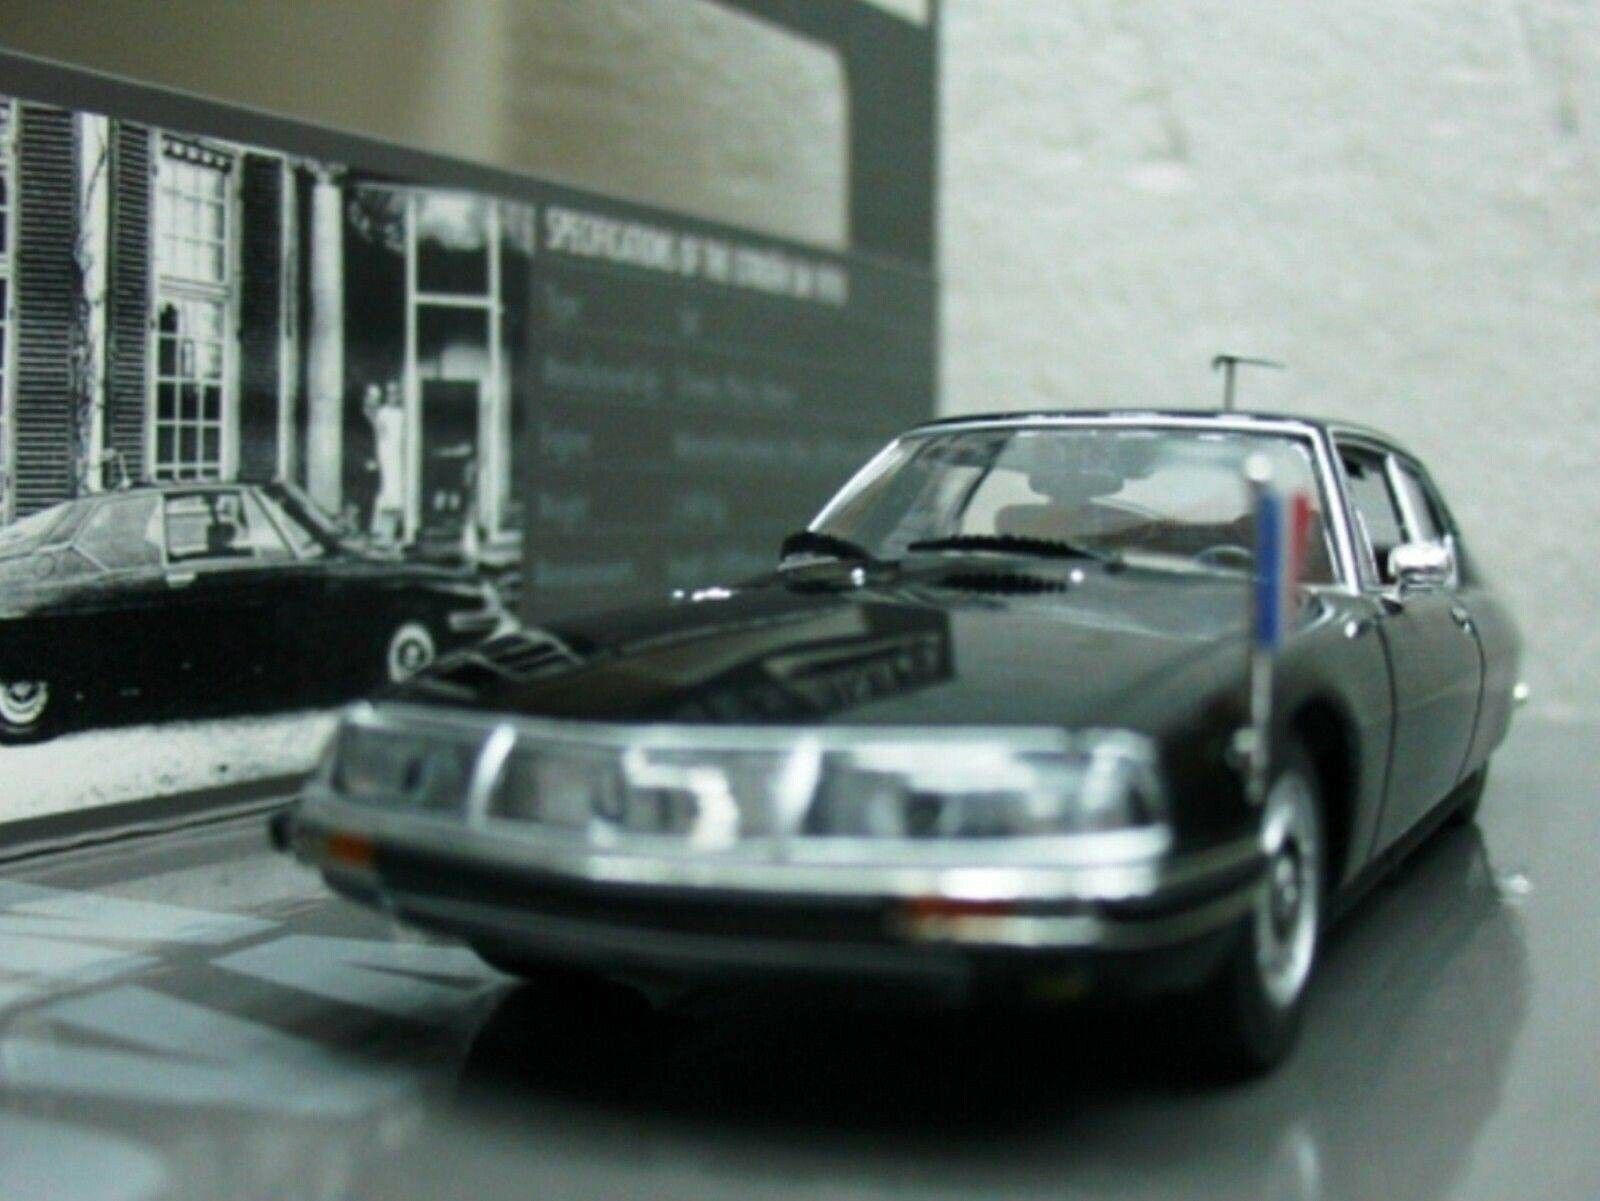 WOW EXTREMELY RARE Citroen SM V6 French Ambassador W Germany 1 43 Minichamps-CX